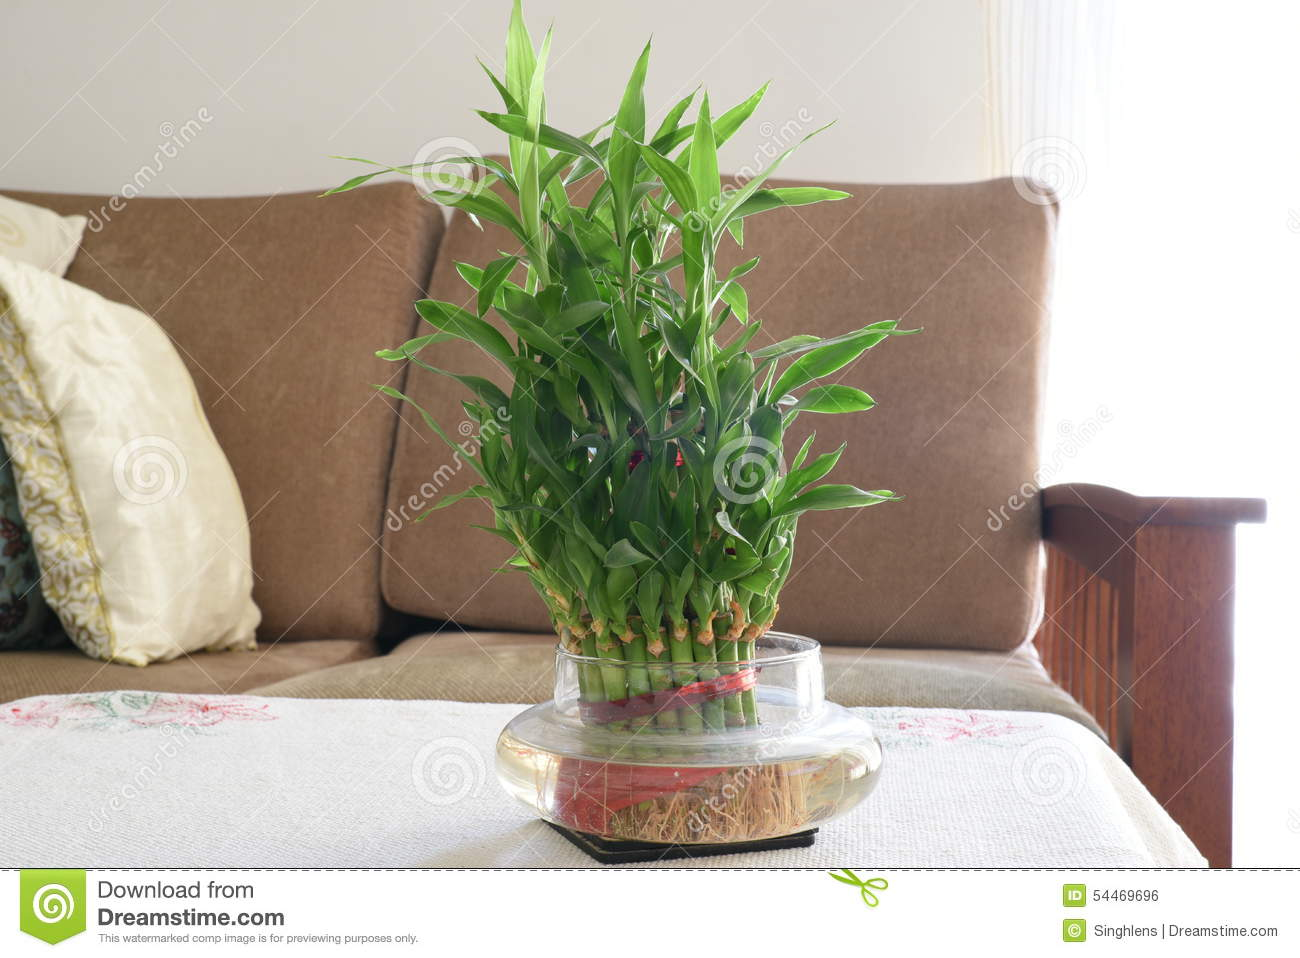 Home Bamboo water plant, green leaves bamboo plant in living room